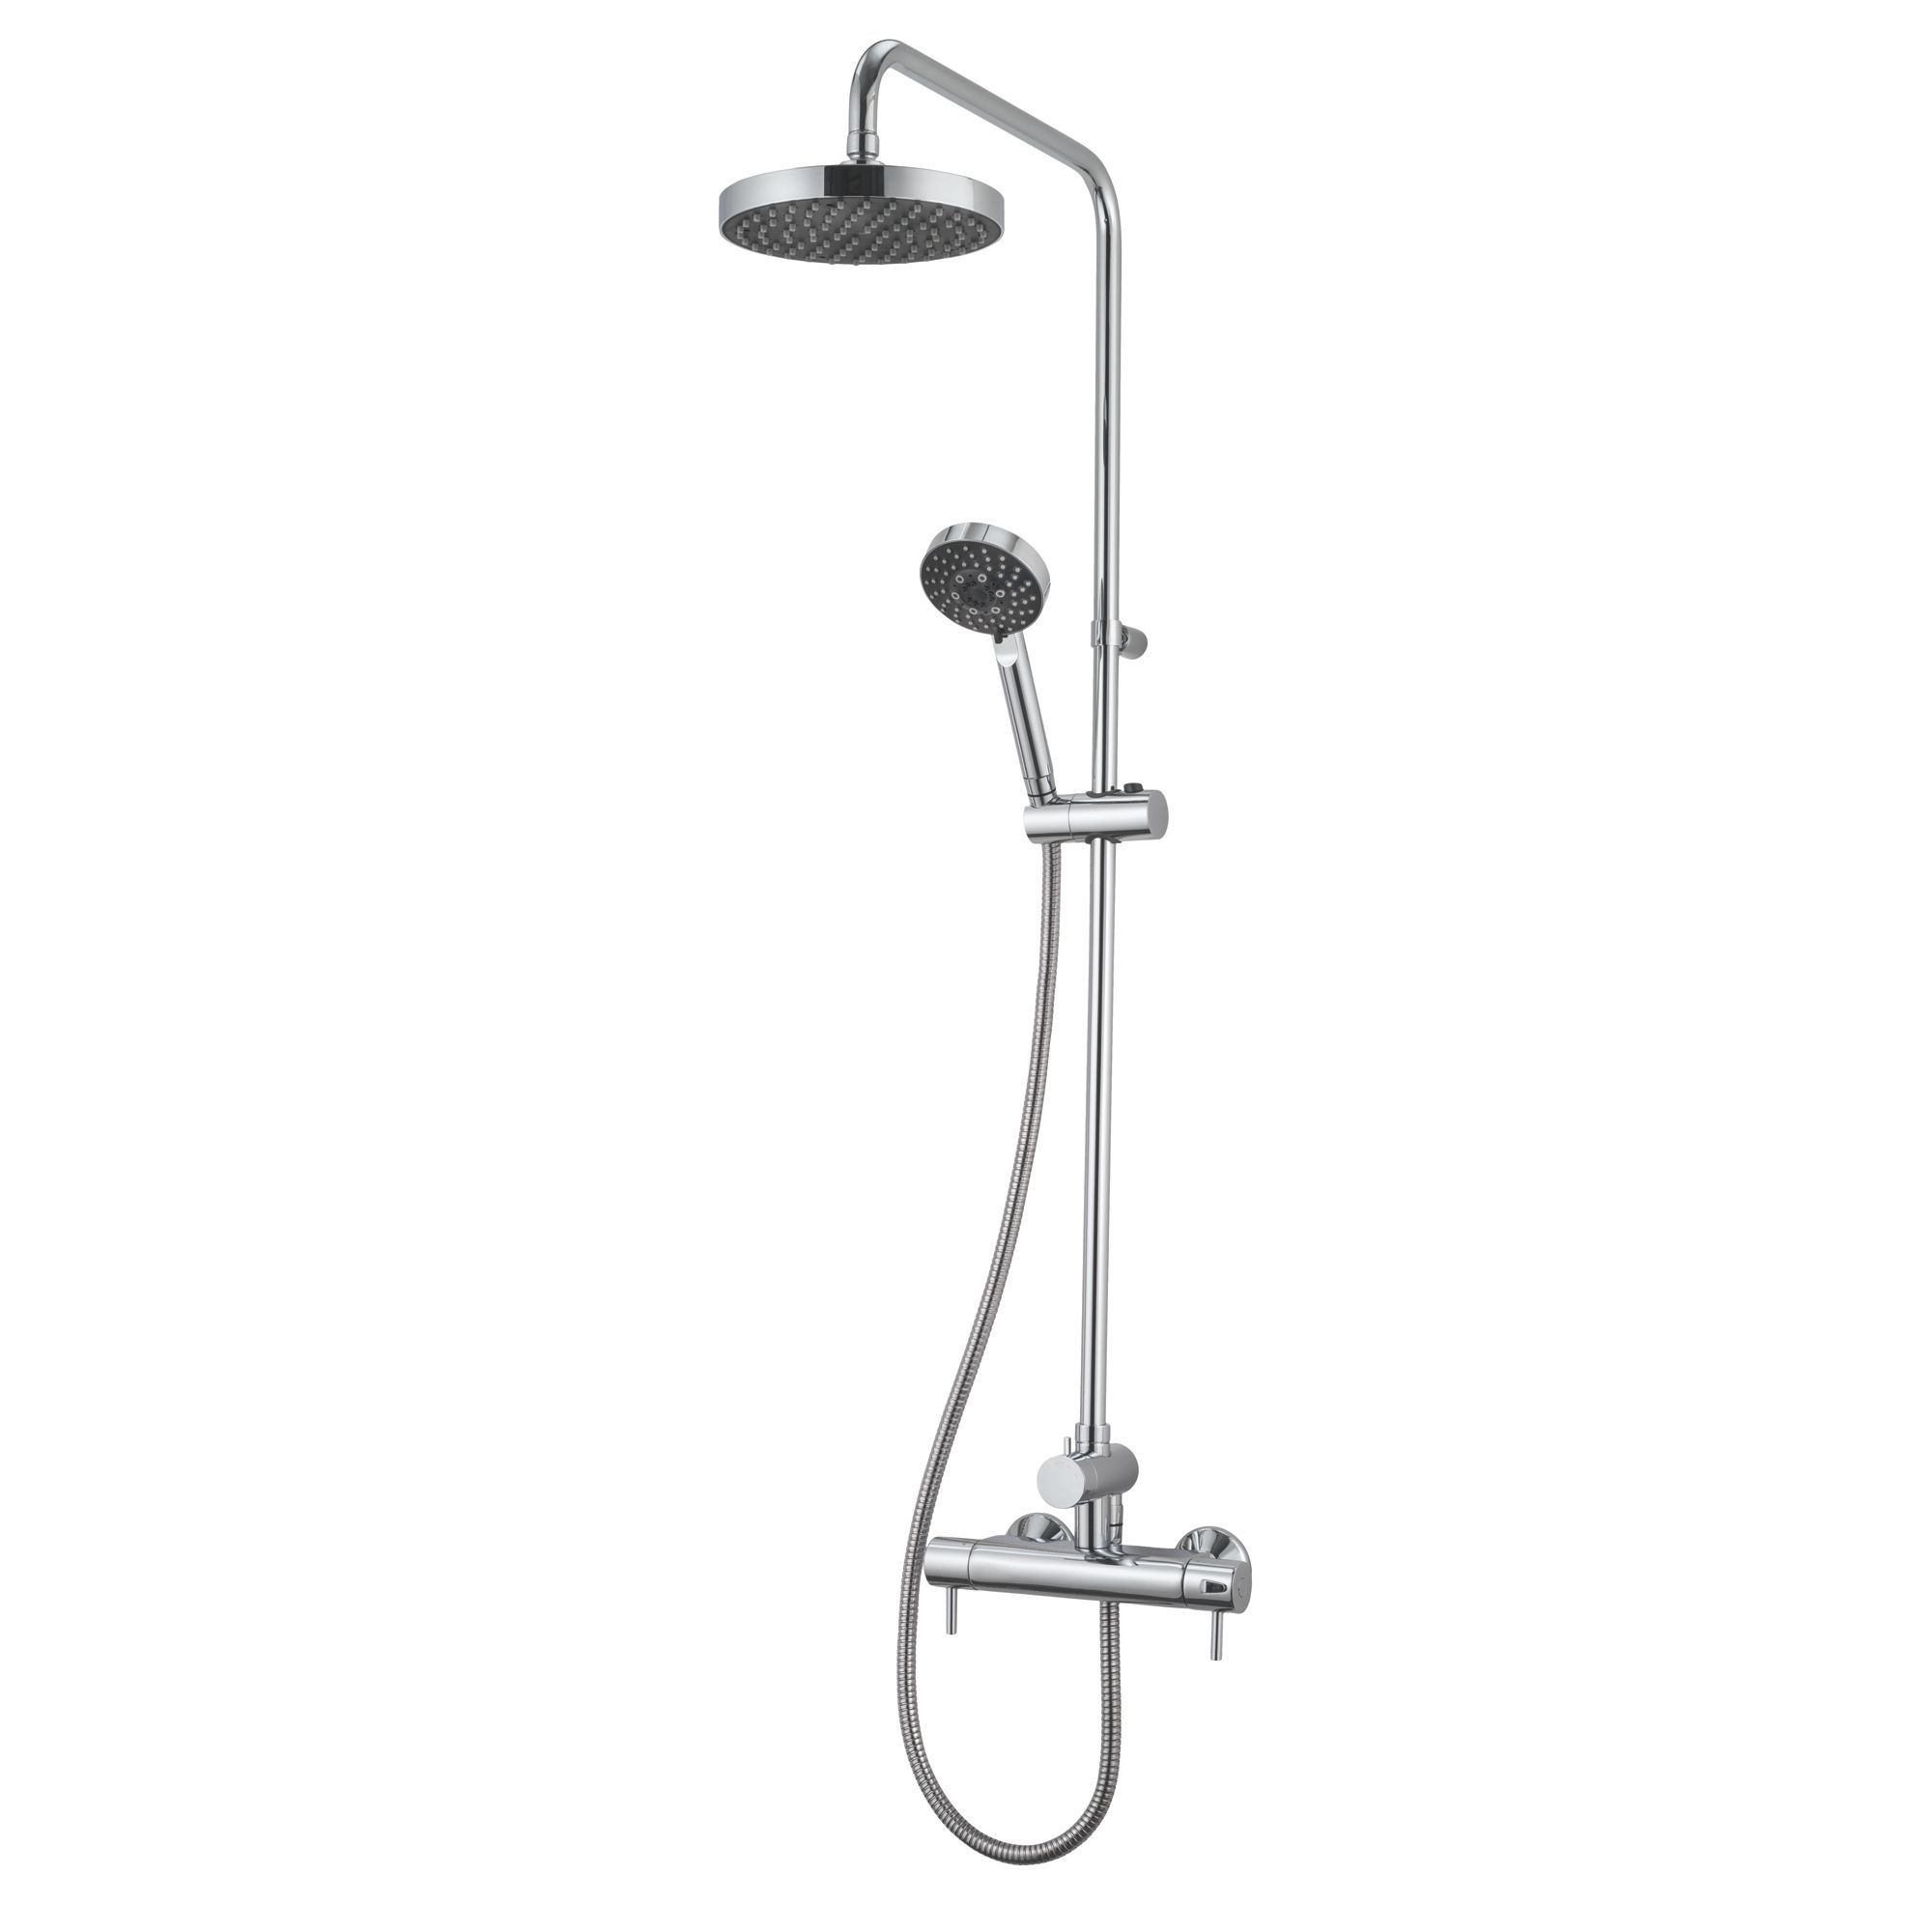 Triton Carnival Chrome Thermostatic Bar Mixer Shower with Diverter ...